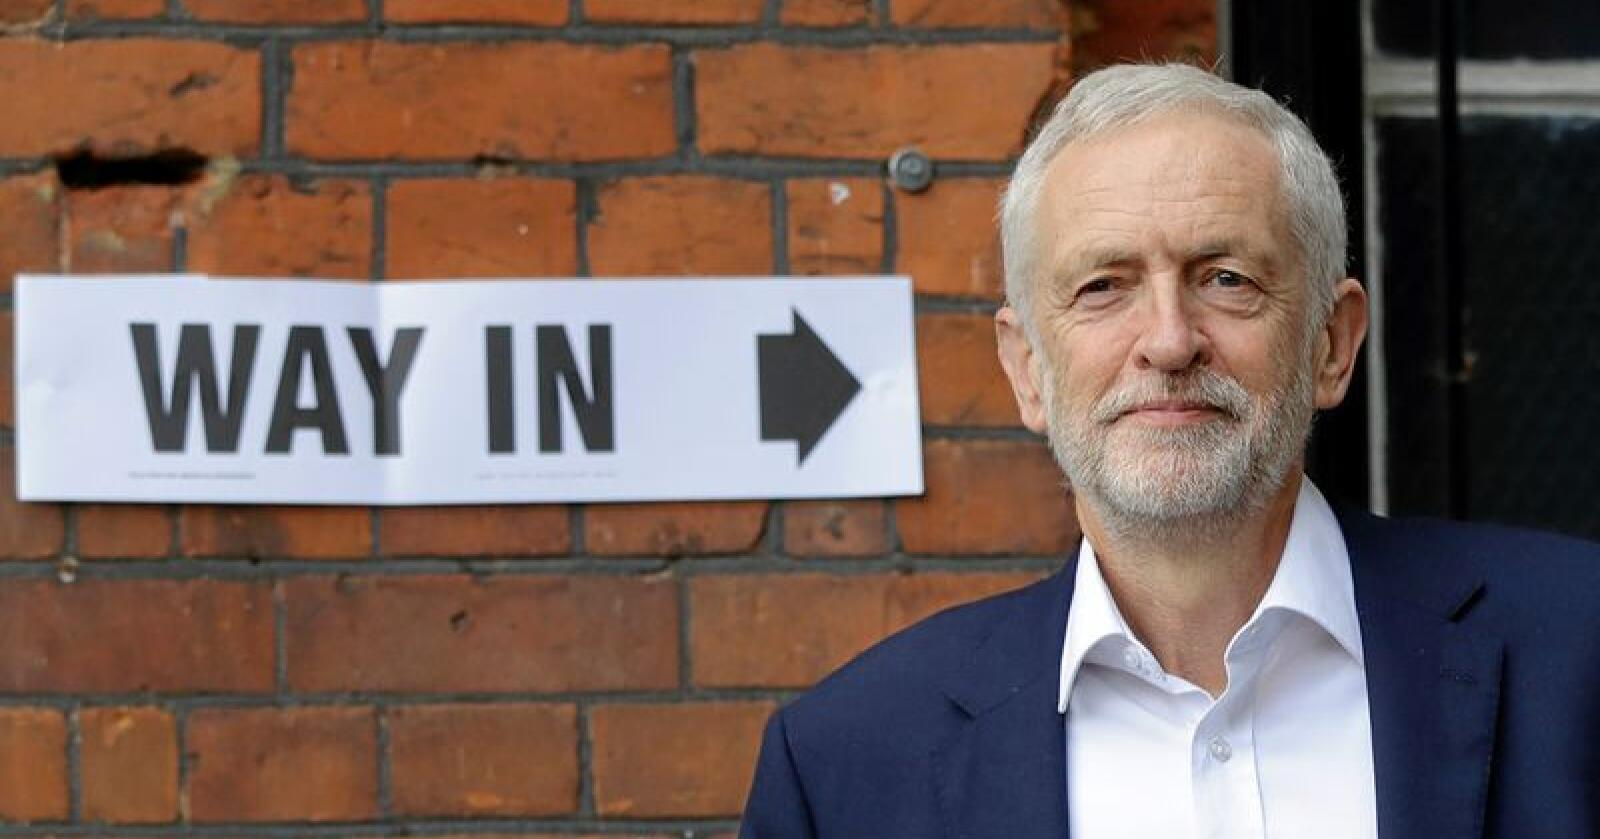 Vil ha omkamp: Labour-leder Jeremy Corbyn.  Foto: AP Photo/Kirsty Wigglesworth, NTB scanpix.